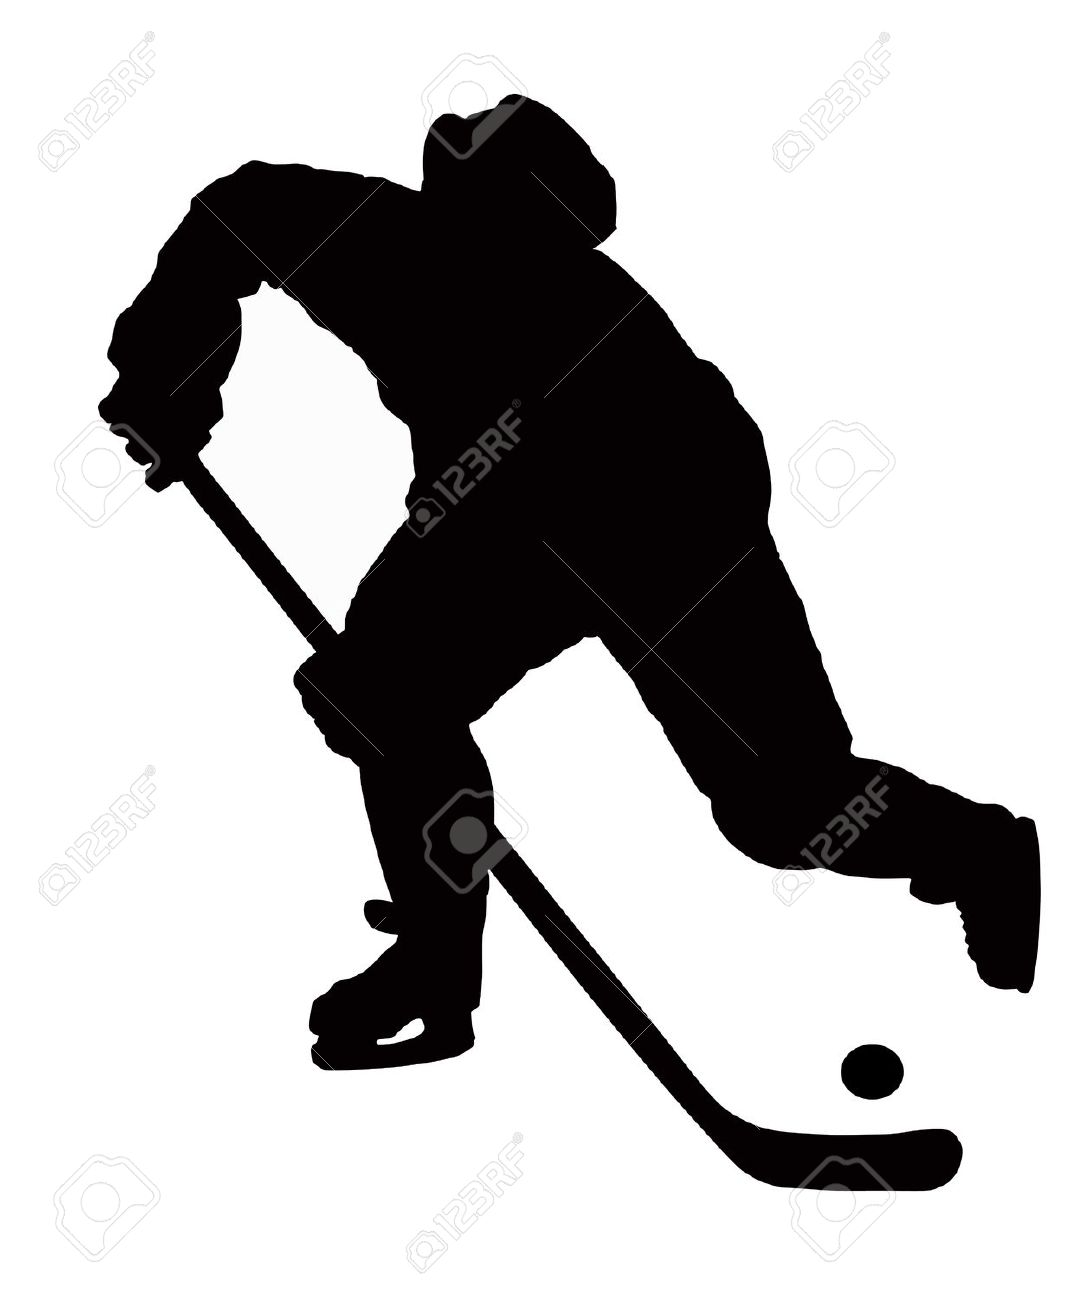 1083x1300 Free Hockey Player Silhouette Clipart Collection